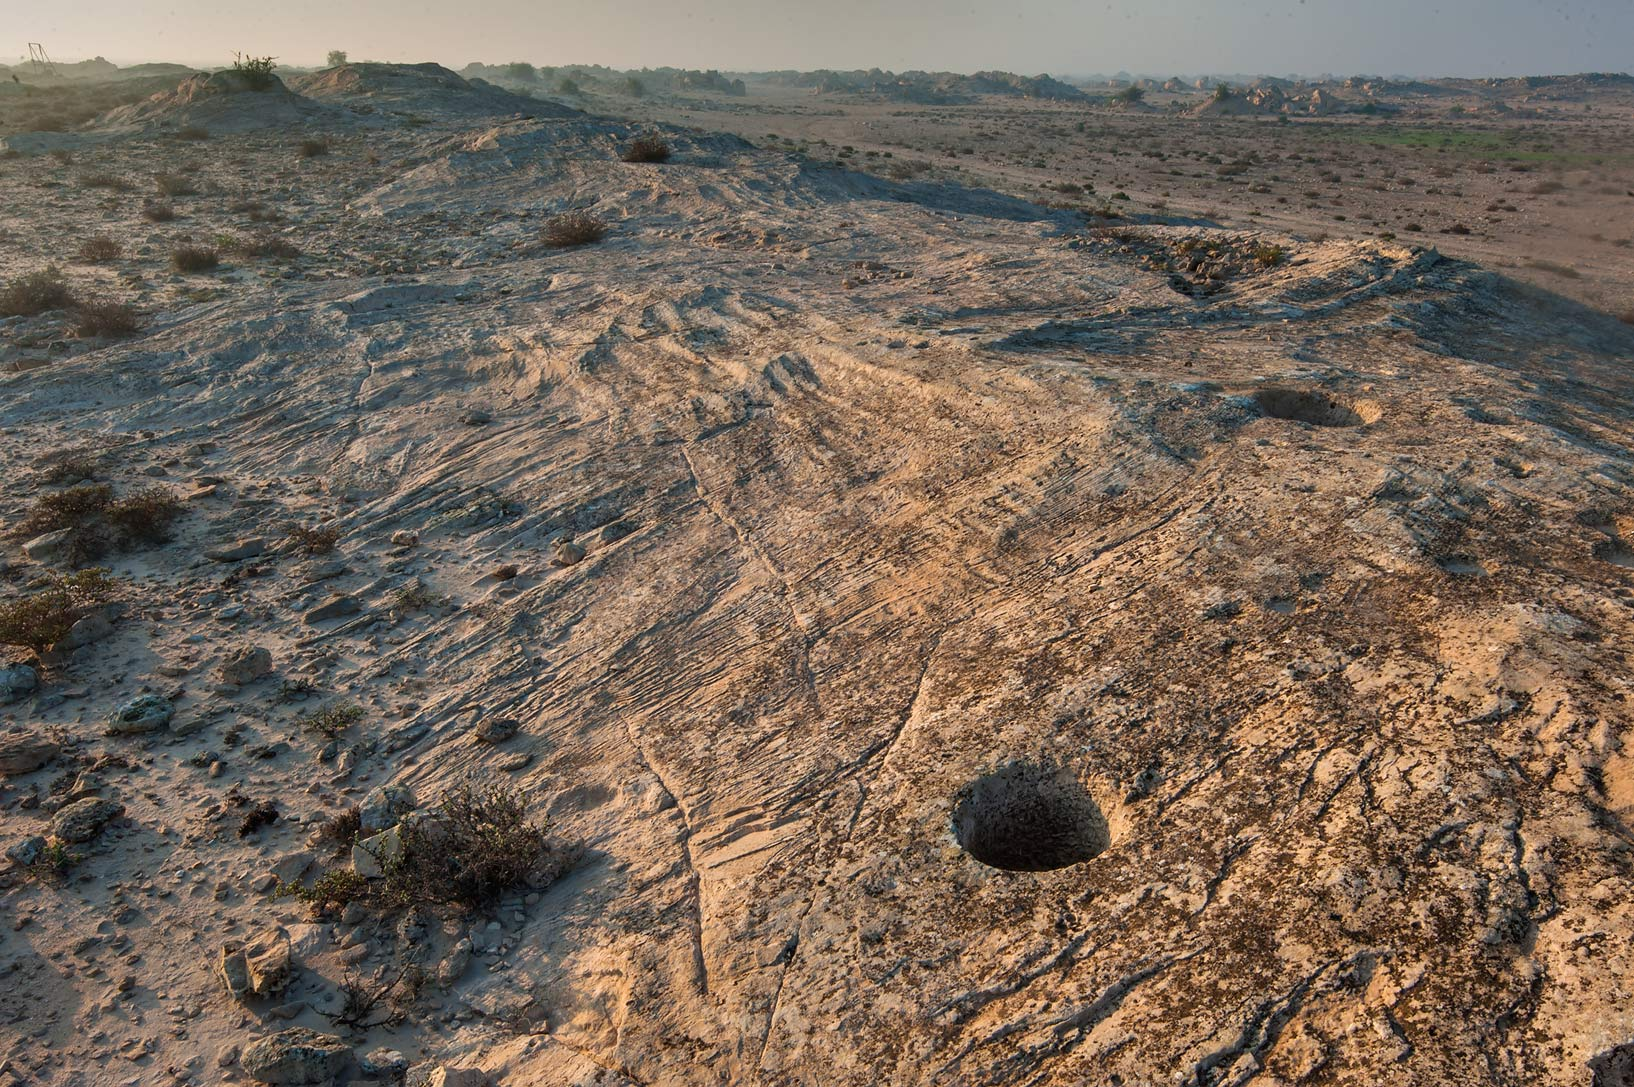 Stone pit on rock carvings (stone engravings...site, on north-eastern coast. Qatar